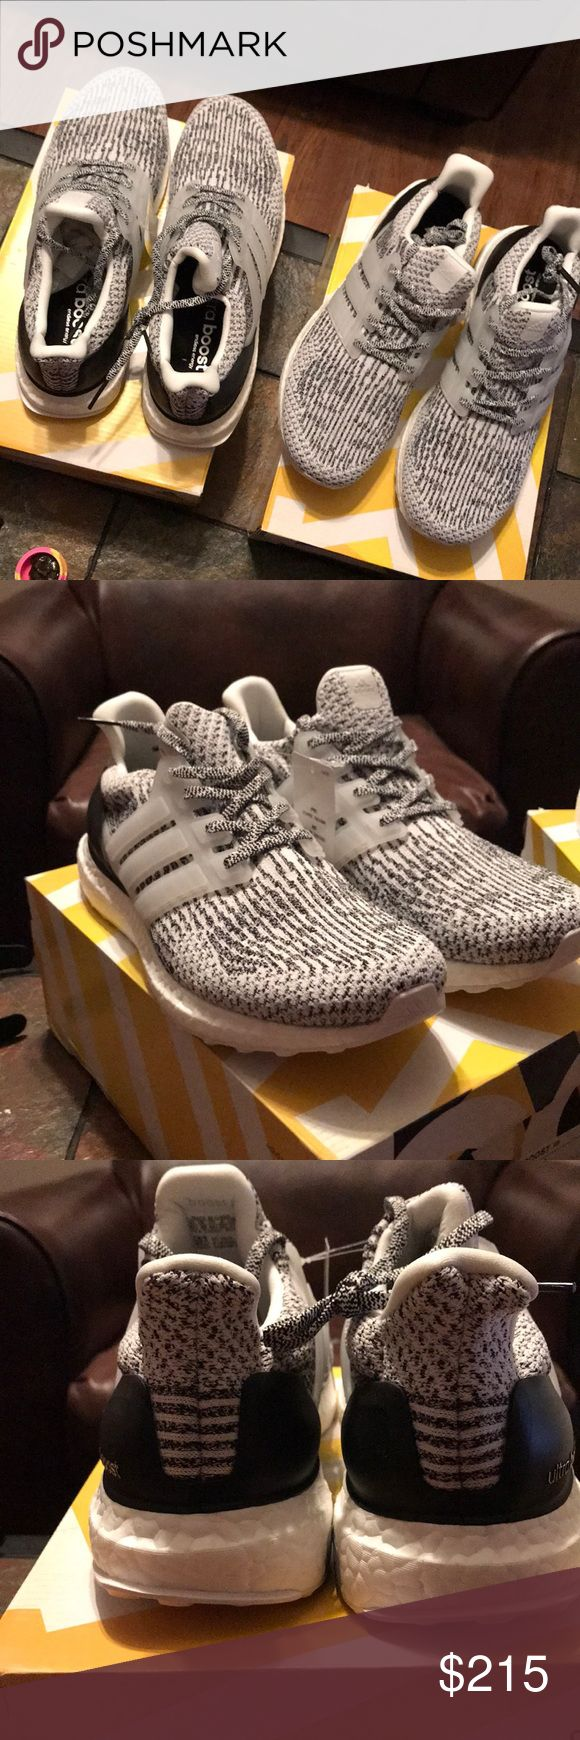 Size 10.5 Oreo adidas Ultra Boost 3.0 Adidas Size 10.5 Oreo UltraBoost 3.0 Brand new adidas Shoes Sneakers